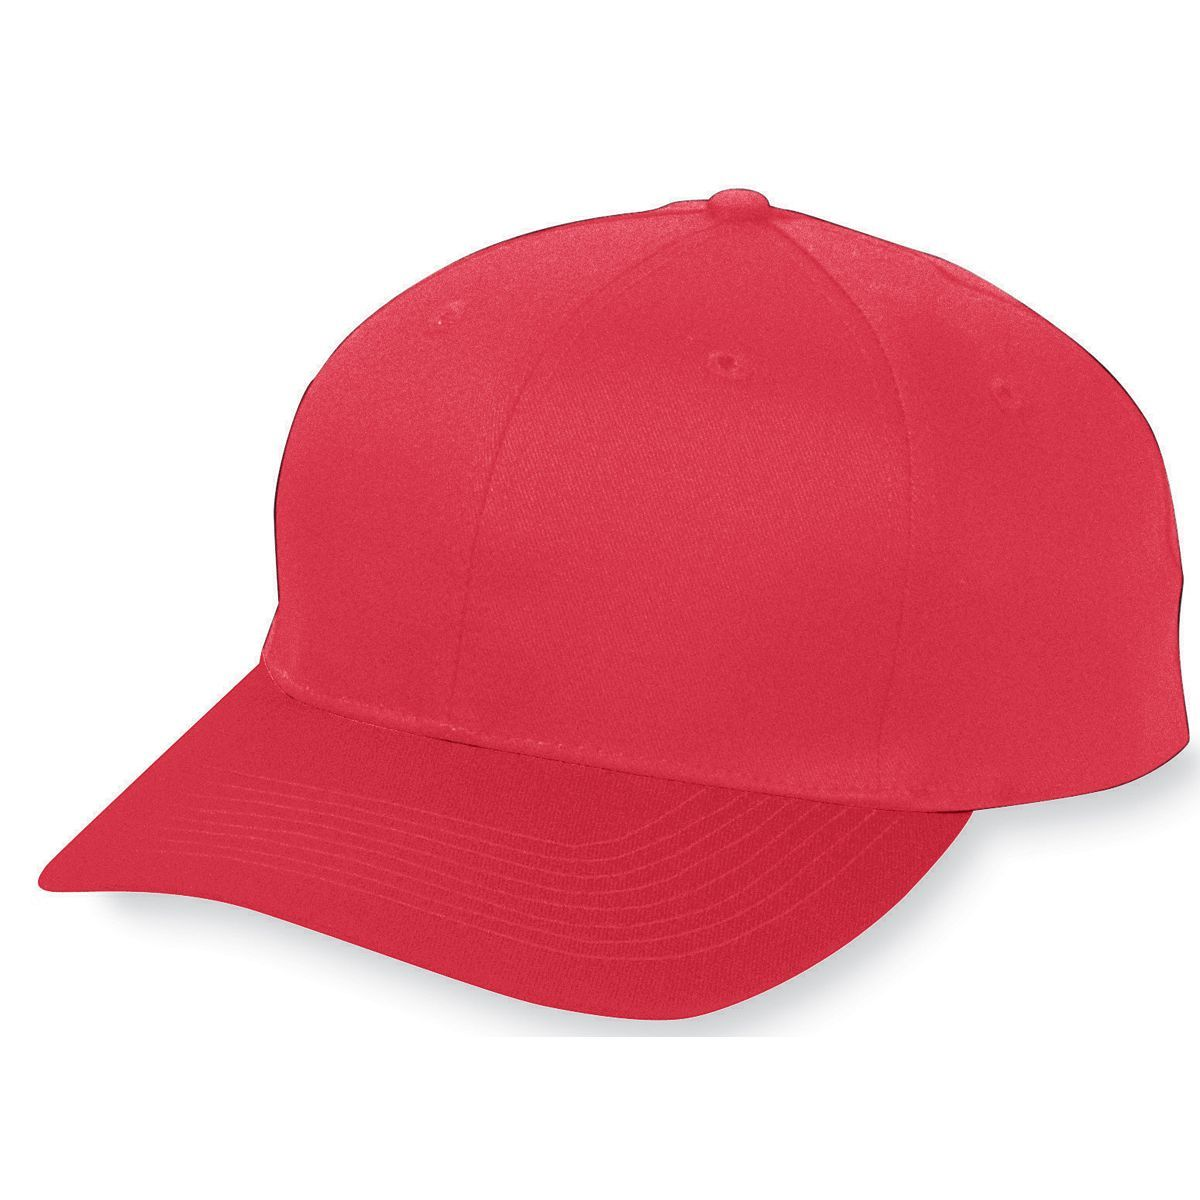 Youth Six-Panel Cotton Twill Low-Profile Cap - RED